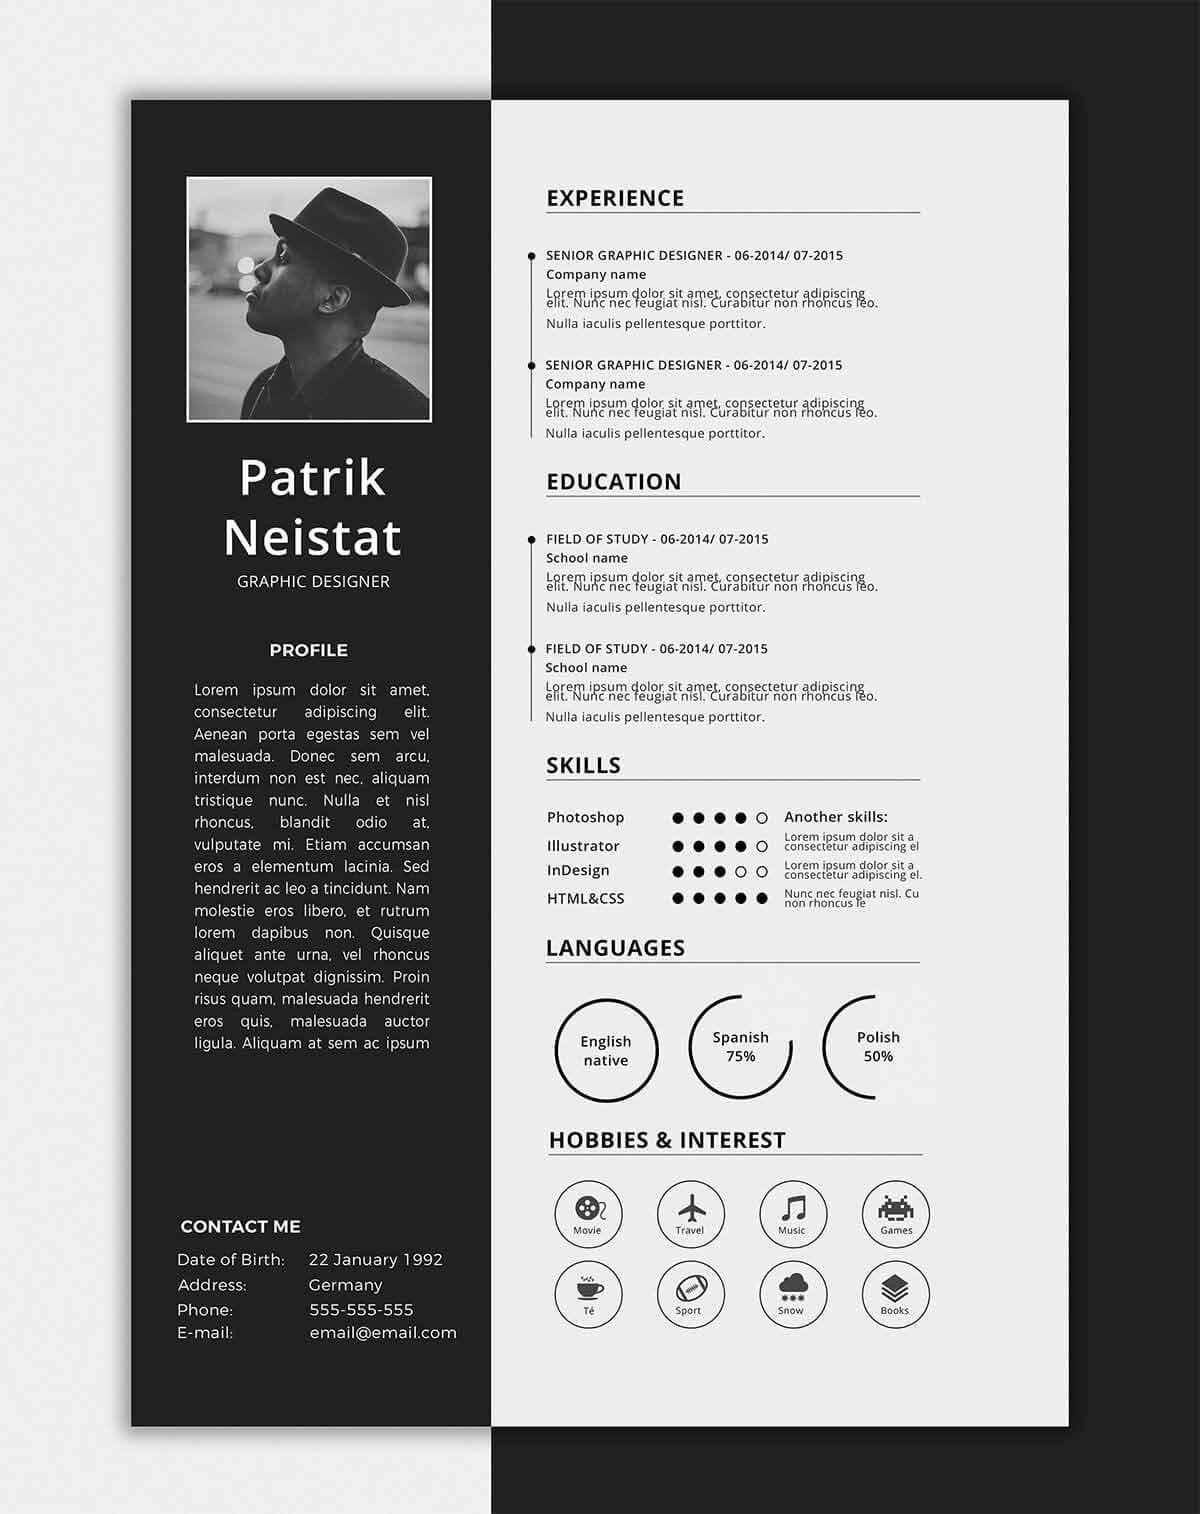 Free One Page Resume Template E Page Resume Templates 15 Examples to Download and Use now